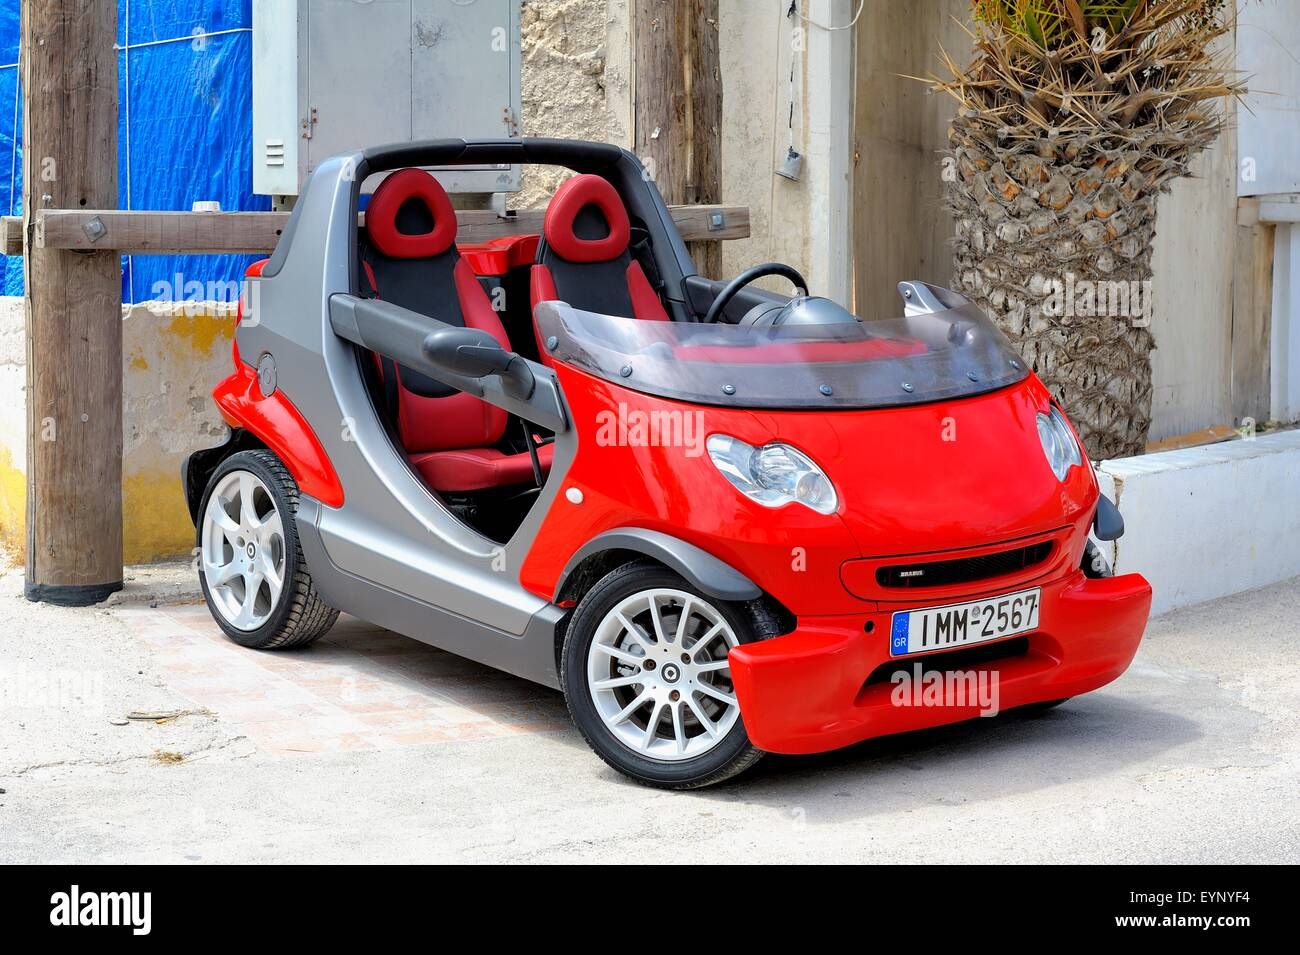 a red cabrio smart car crossblade in santorini greece stock photo 85919768 alamy. Black Bedroom Furniture Sets. Home Design Ideas